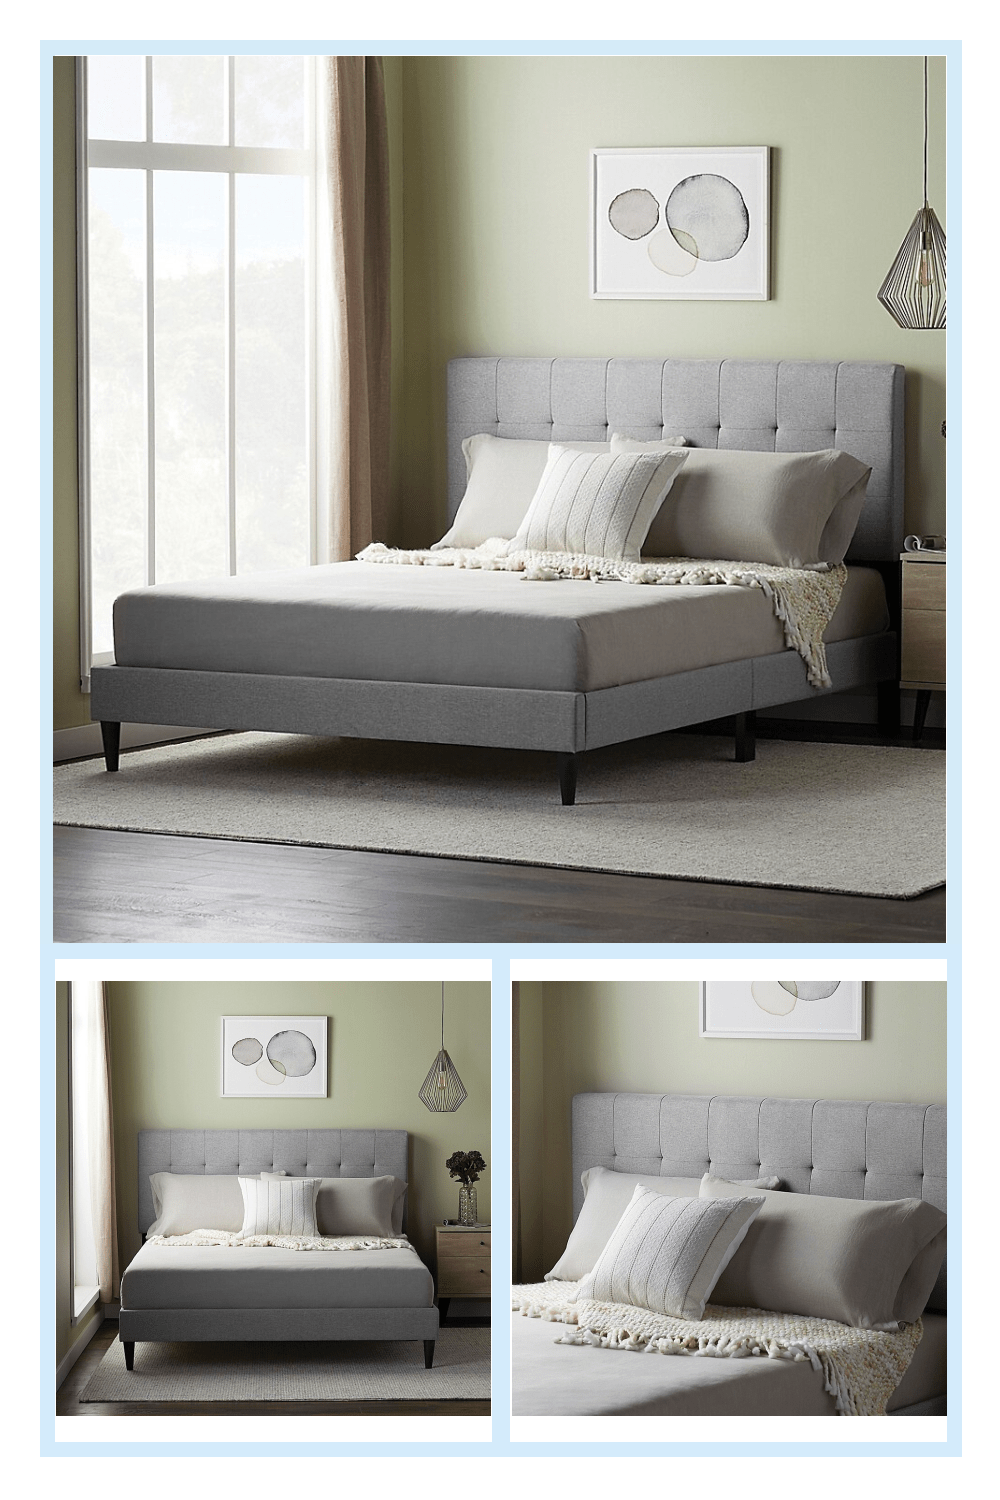 twin xl headboard and frame on dream collection by lucid platform bed frame with square tufted headboard bed bath beyond grey bed frame fabric bed frame twin platform bed frame pinterest